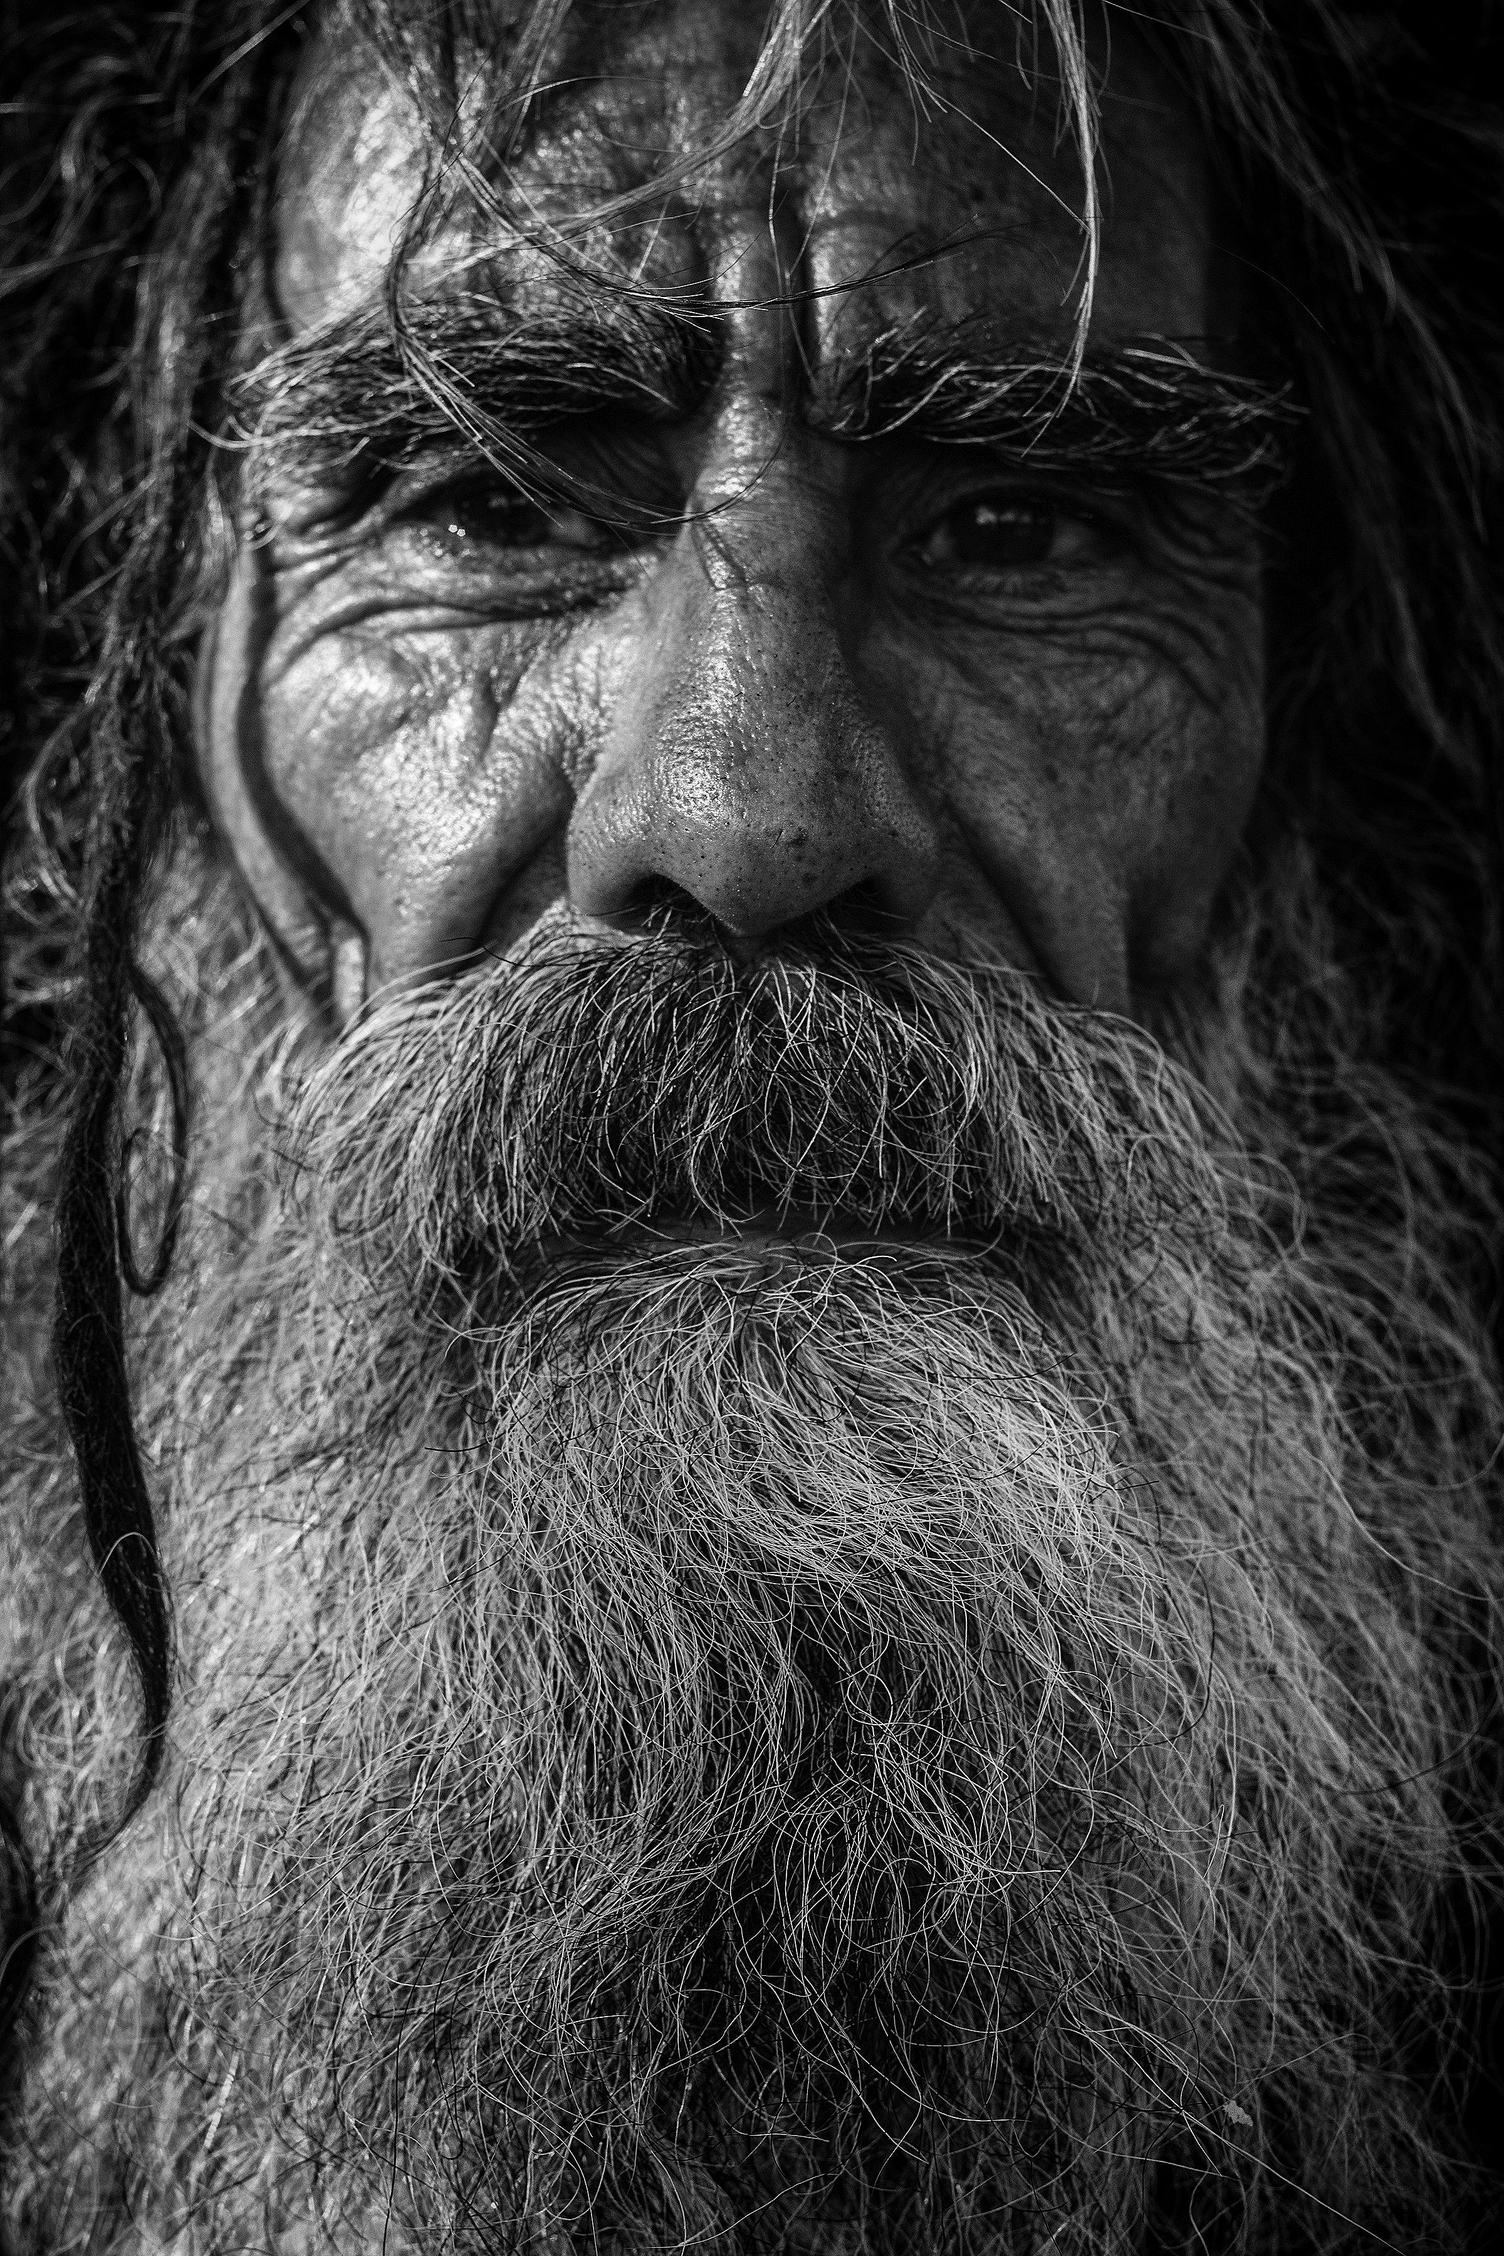 Old Man with Long Beard